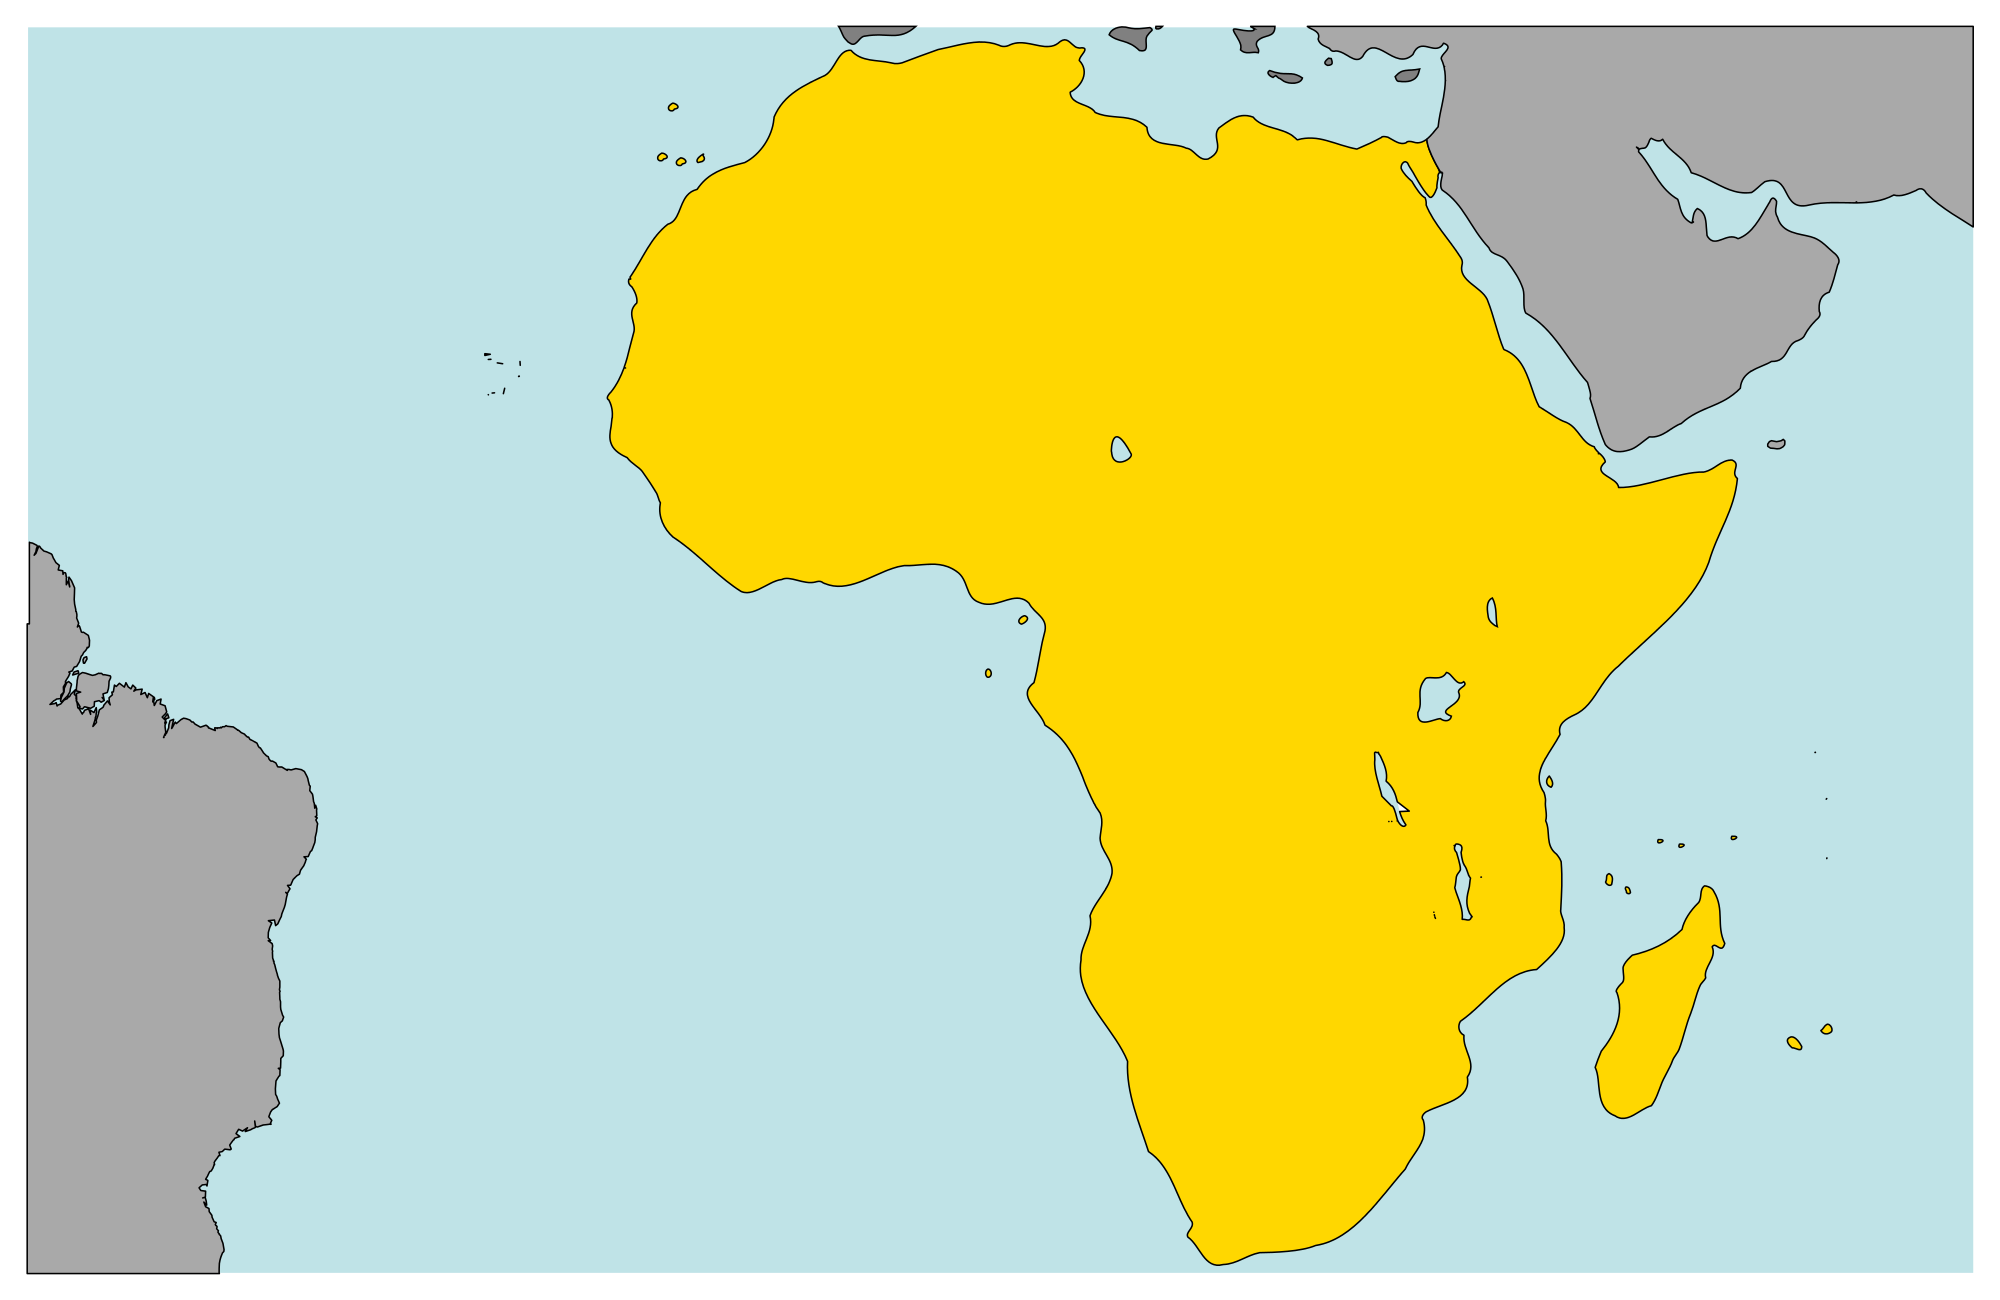 Map of Africa. image courtesy of wikimedia.org